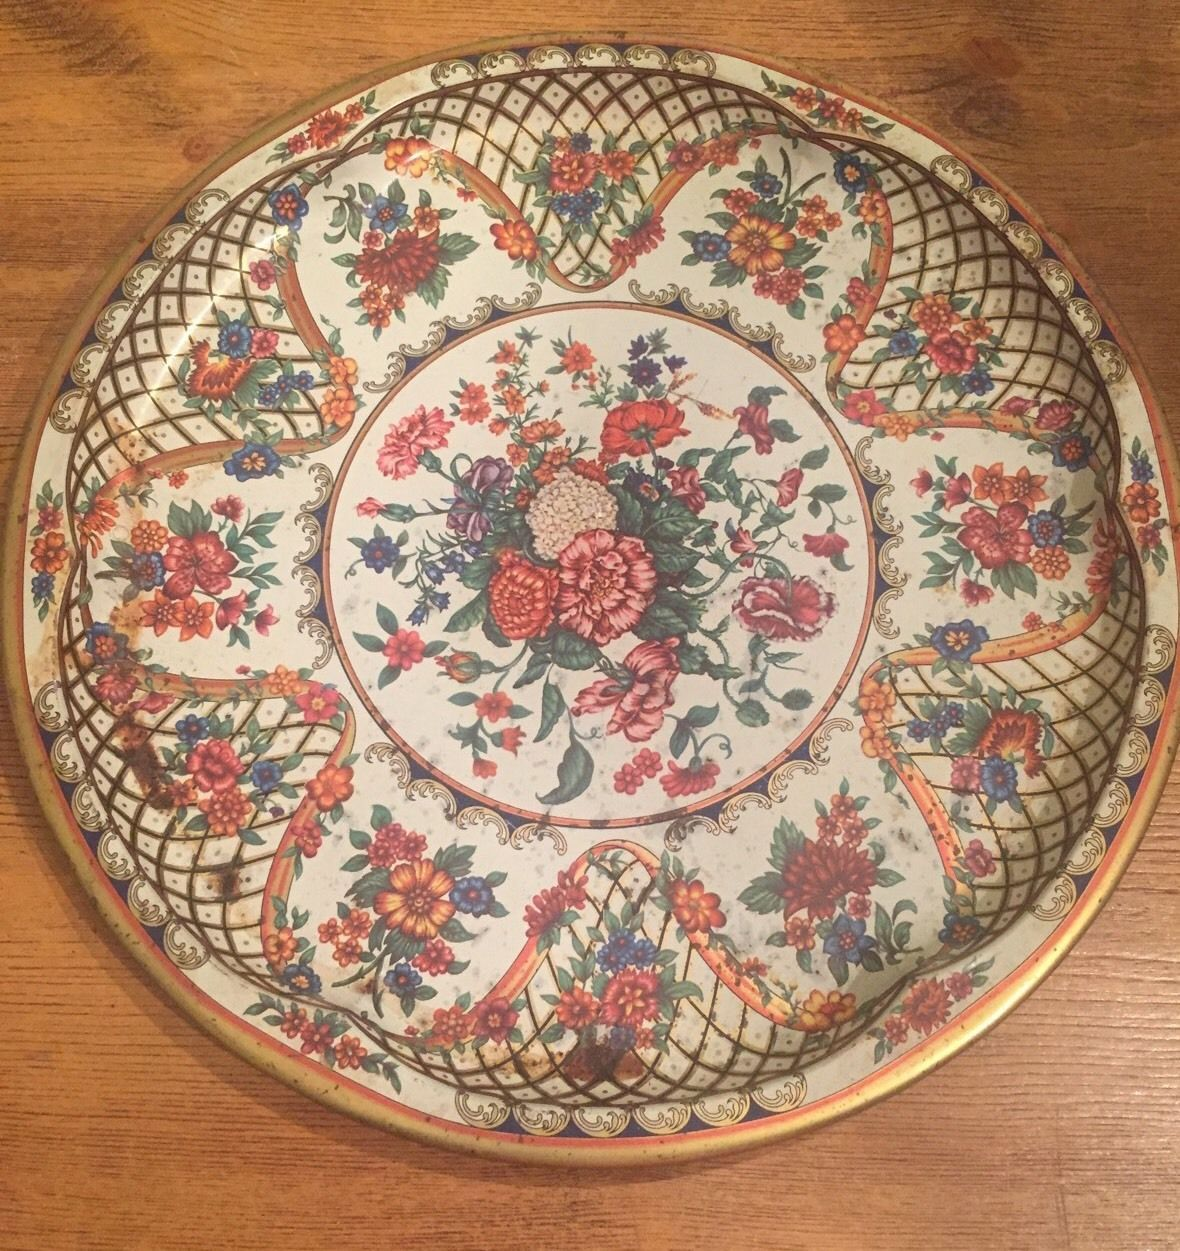 Daher Decorated Ware Tray Made In England Daher Decorated Ware Large Floral Metal Serving Tray Made In